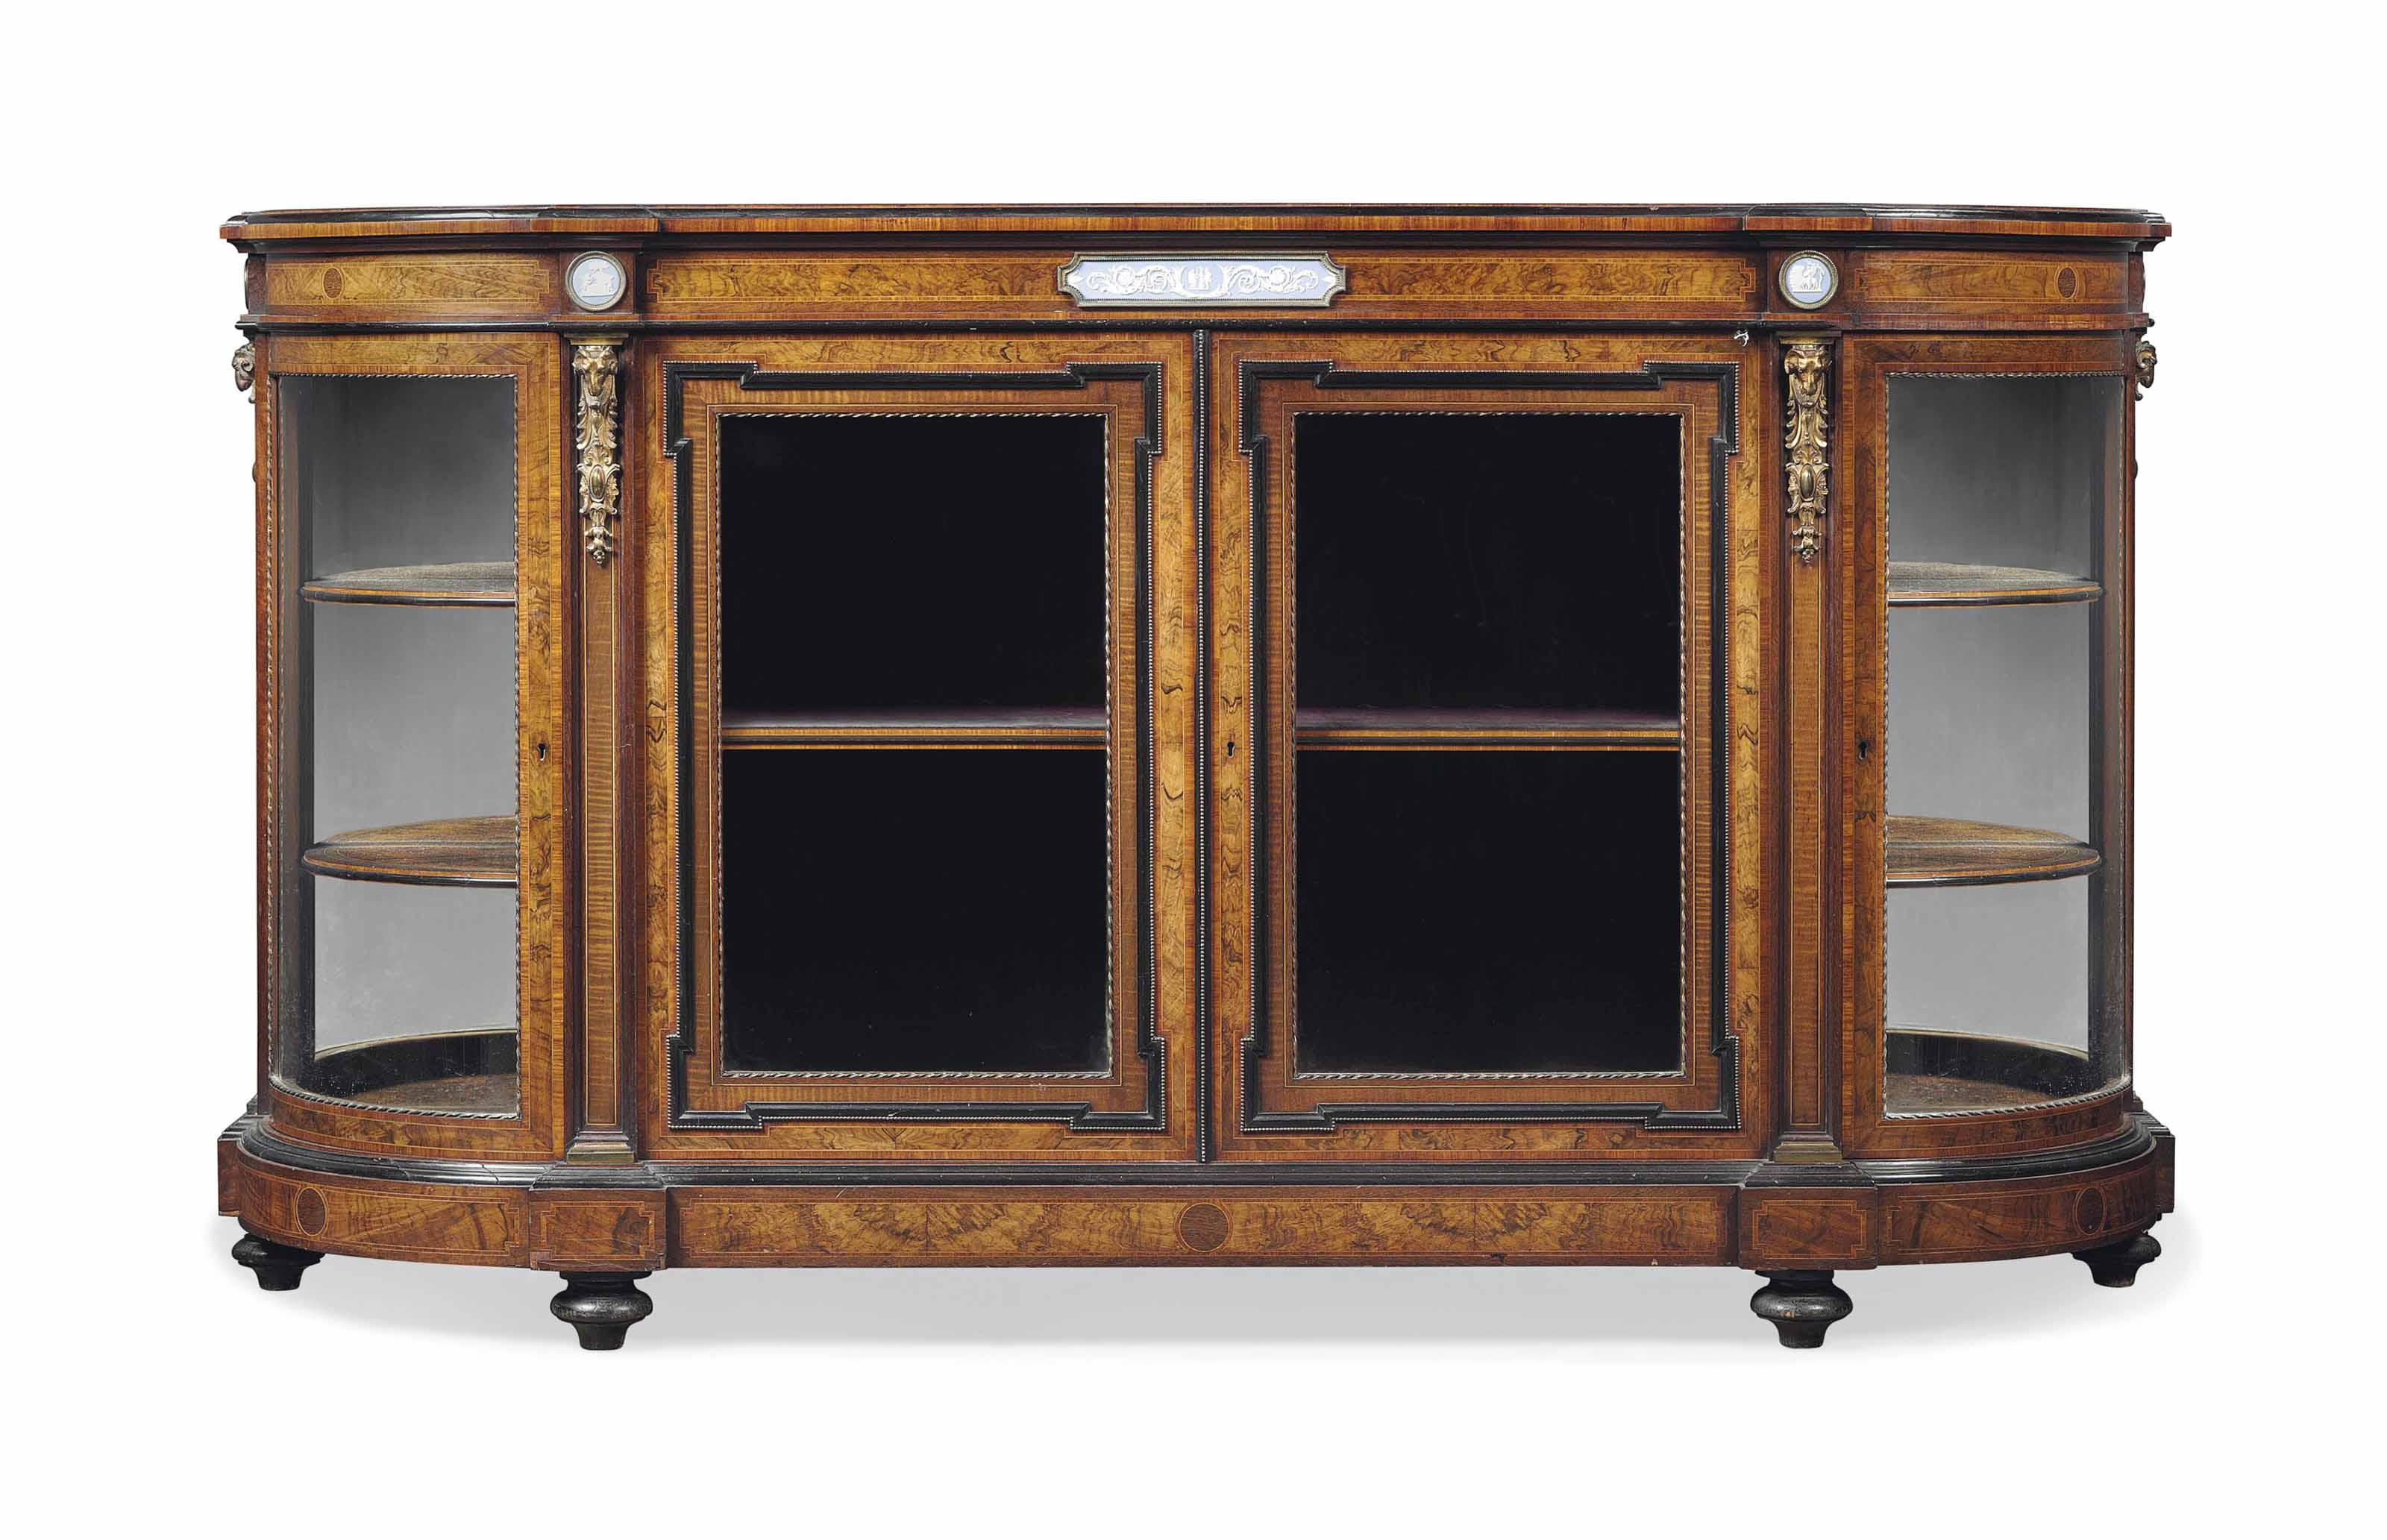 A VICTORIAN GILT-BRONZE MOUNTED BURR WALNUT AND EBONISED CREDENZA